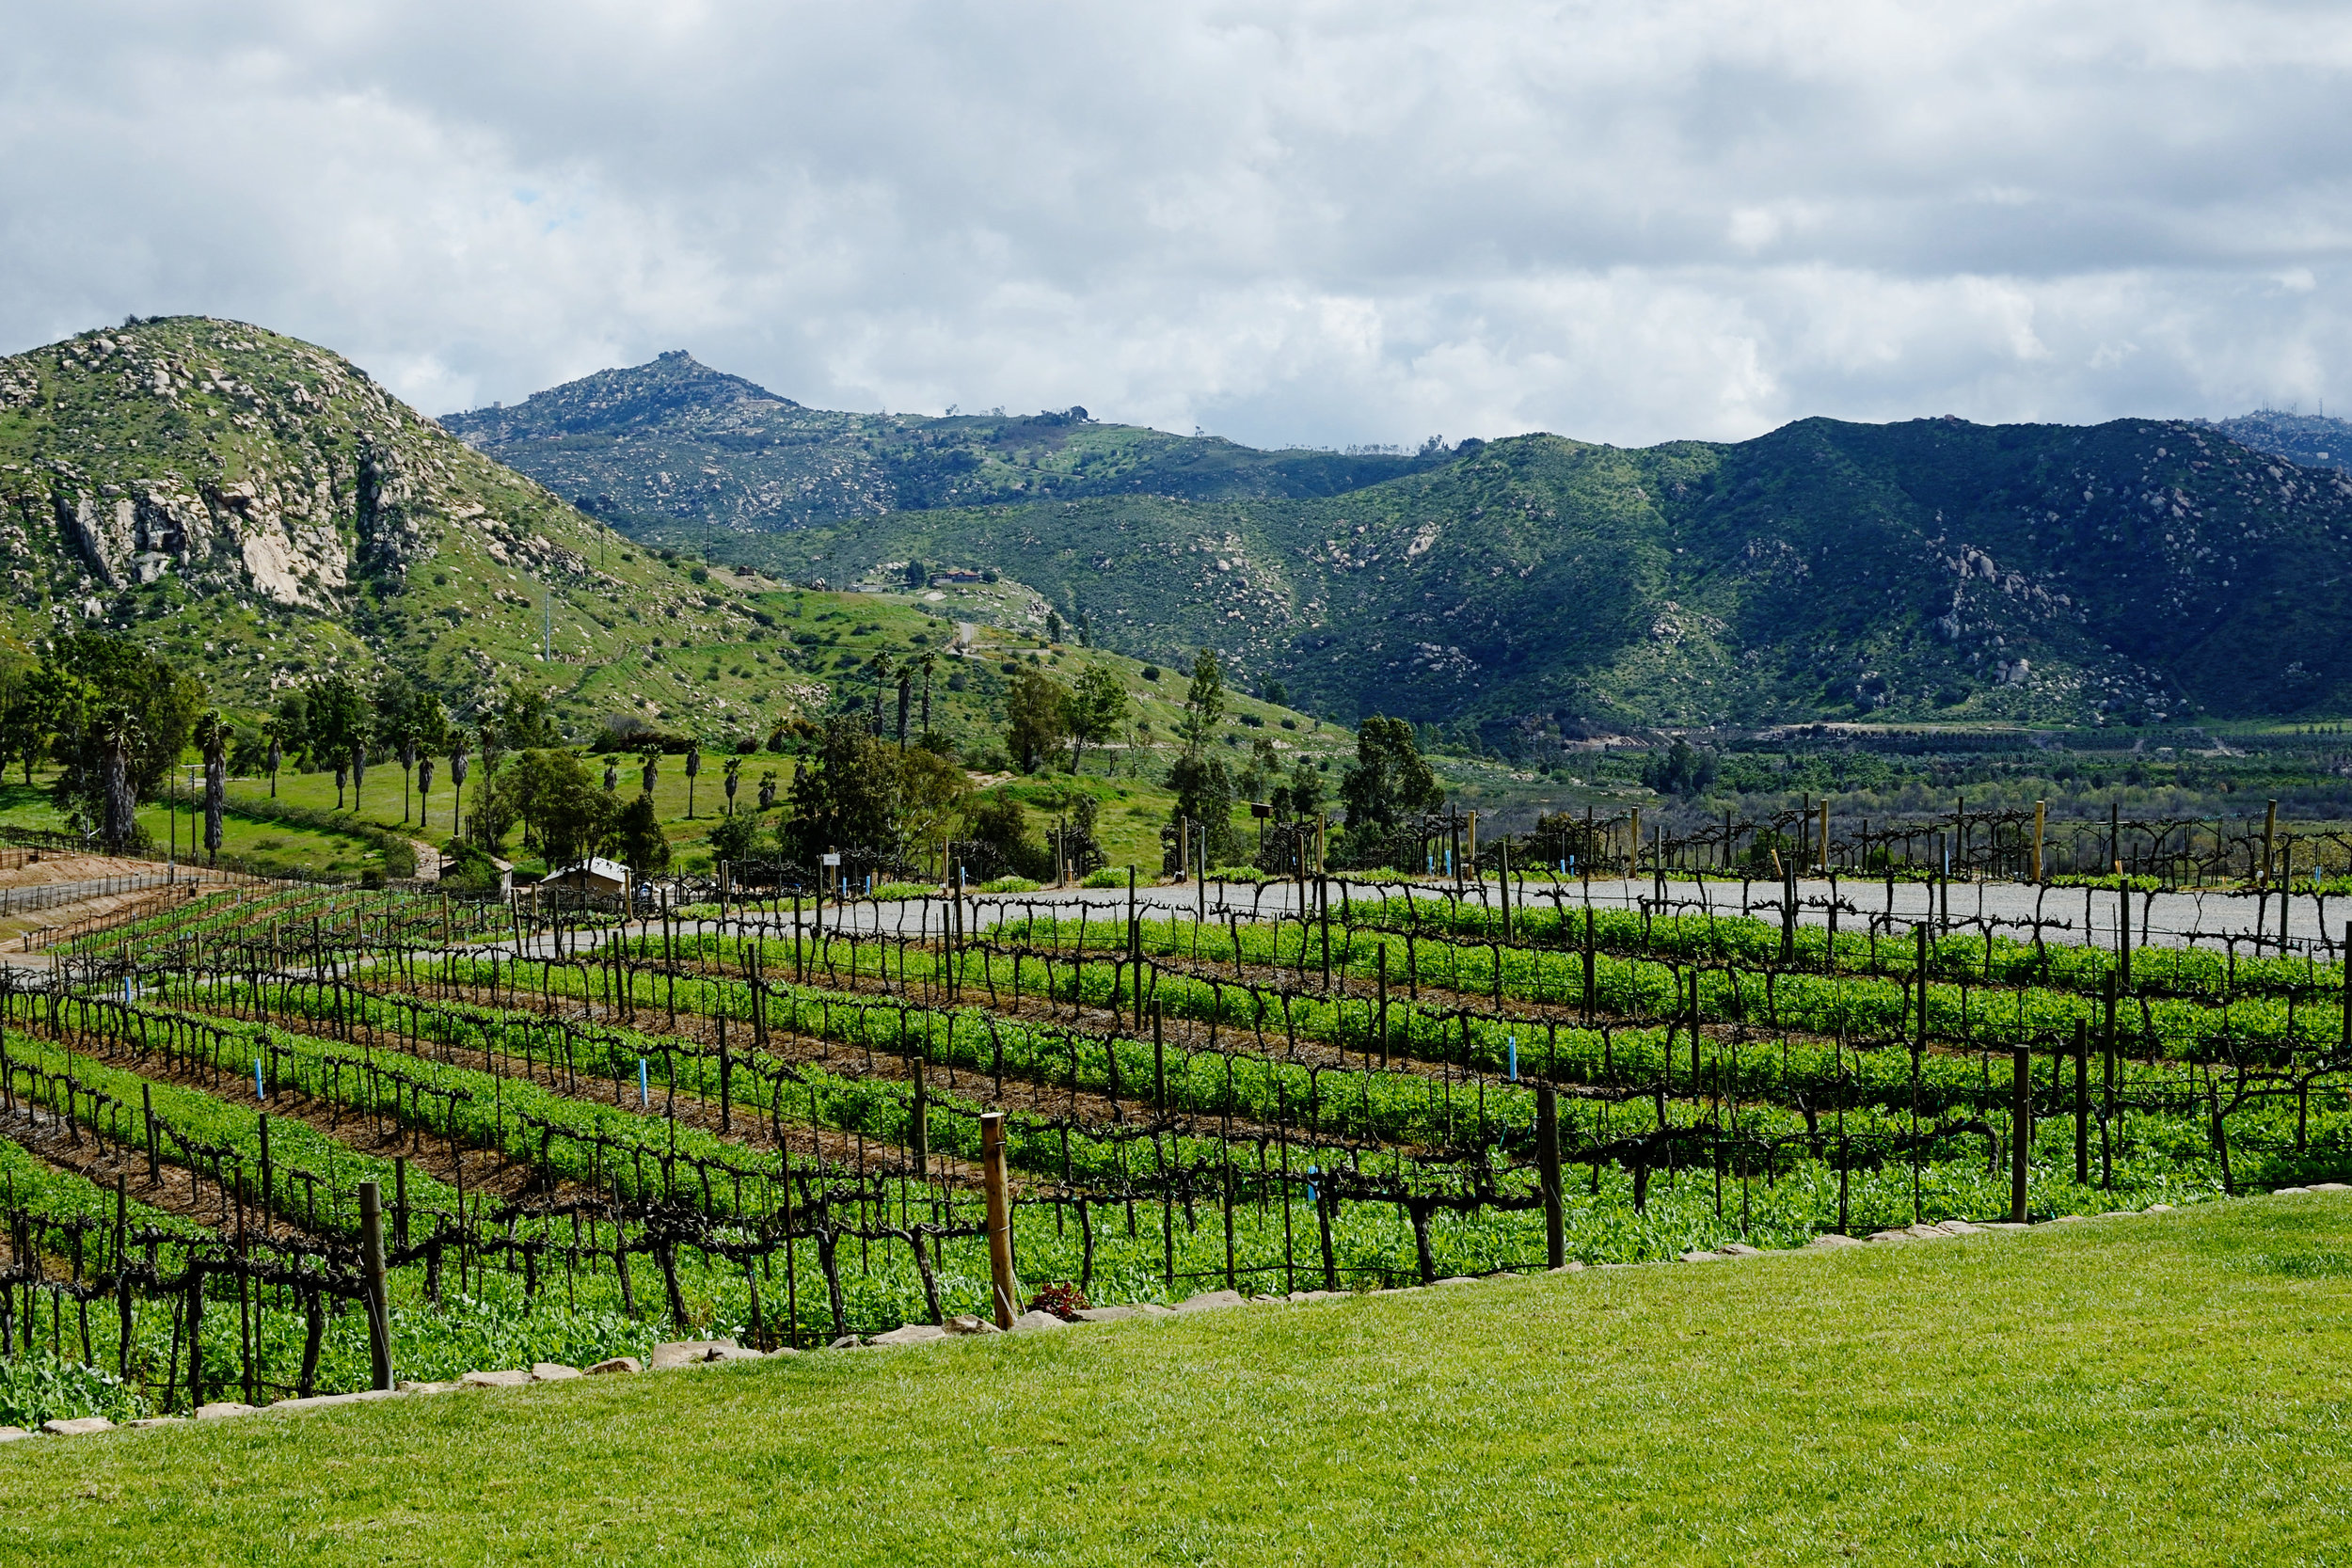 Lifestyle Winery 9363 by maria pablo.JPG